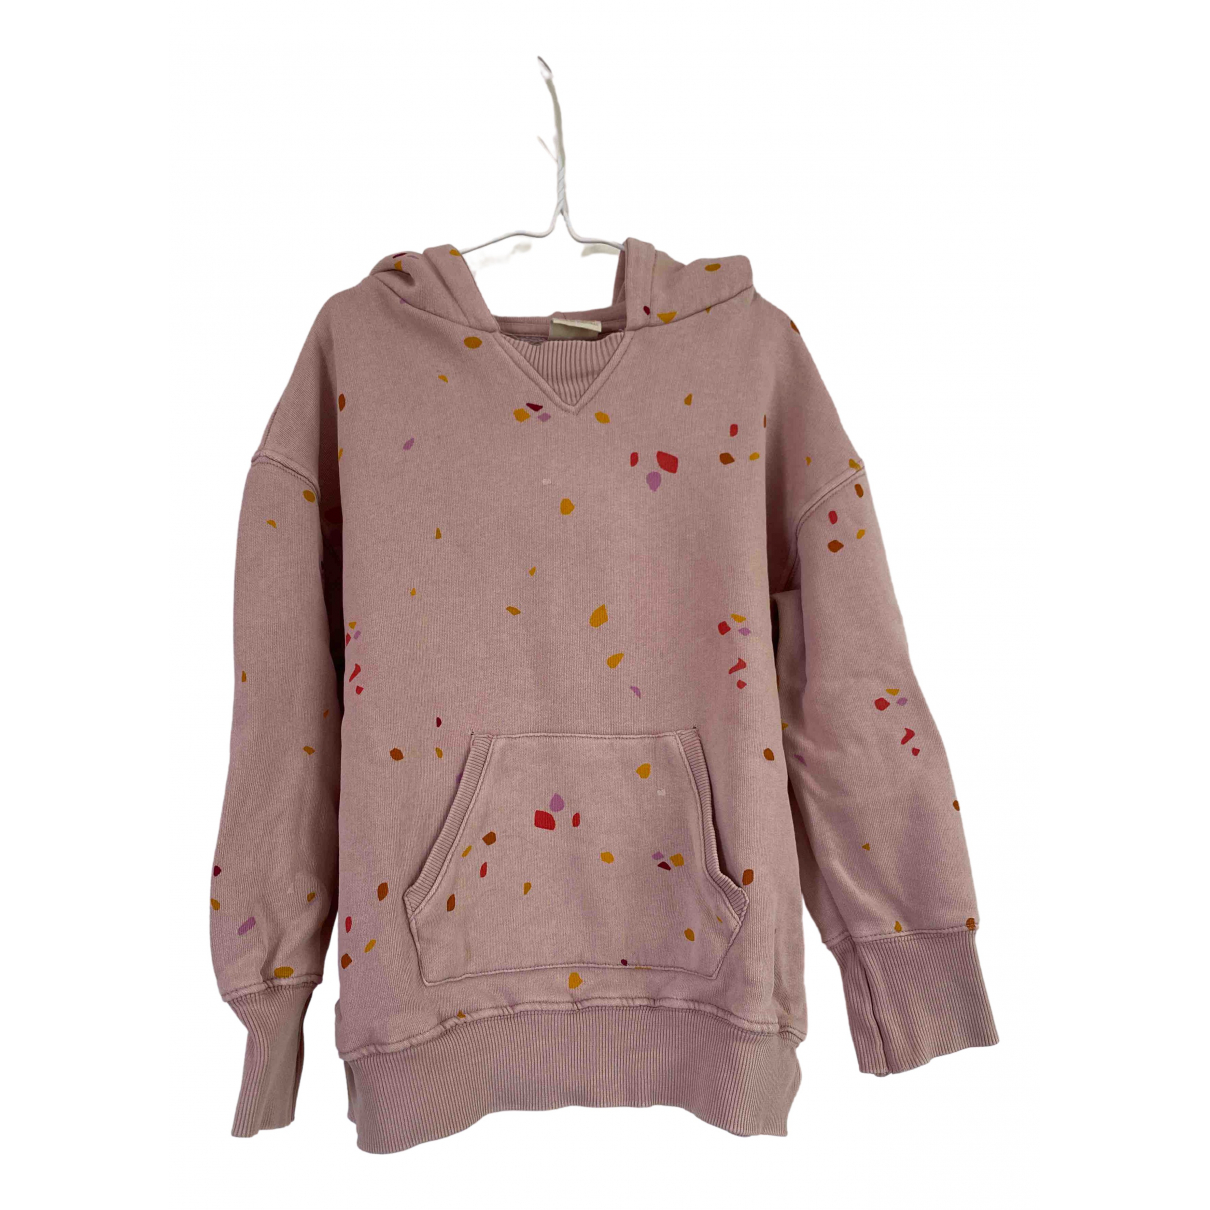 Zara \N Pink Cotton Knitwear for Kids 8 years - up to 128cm FR